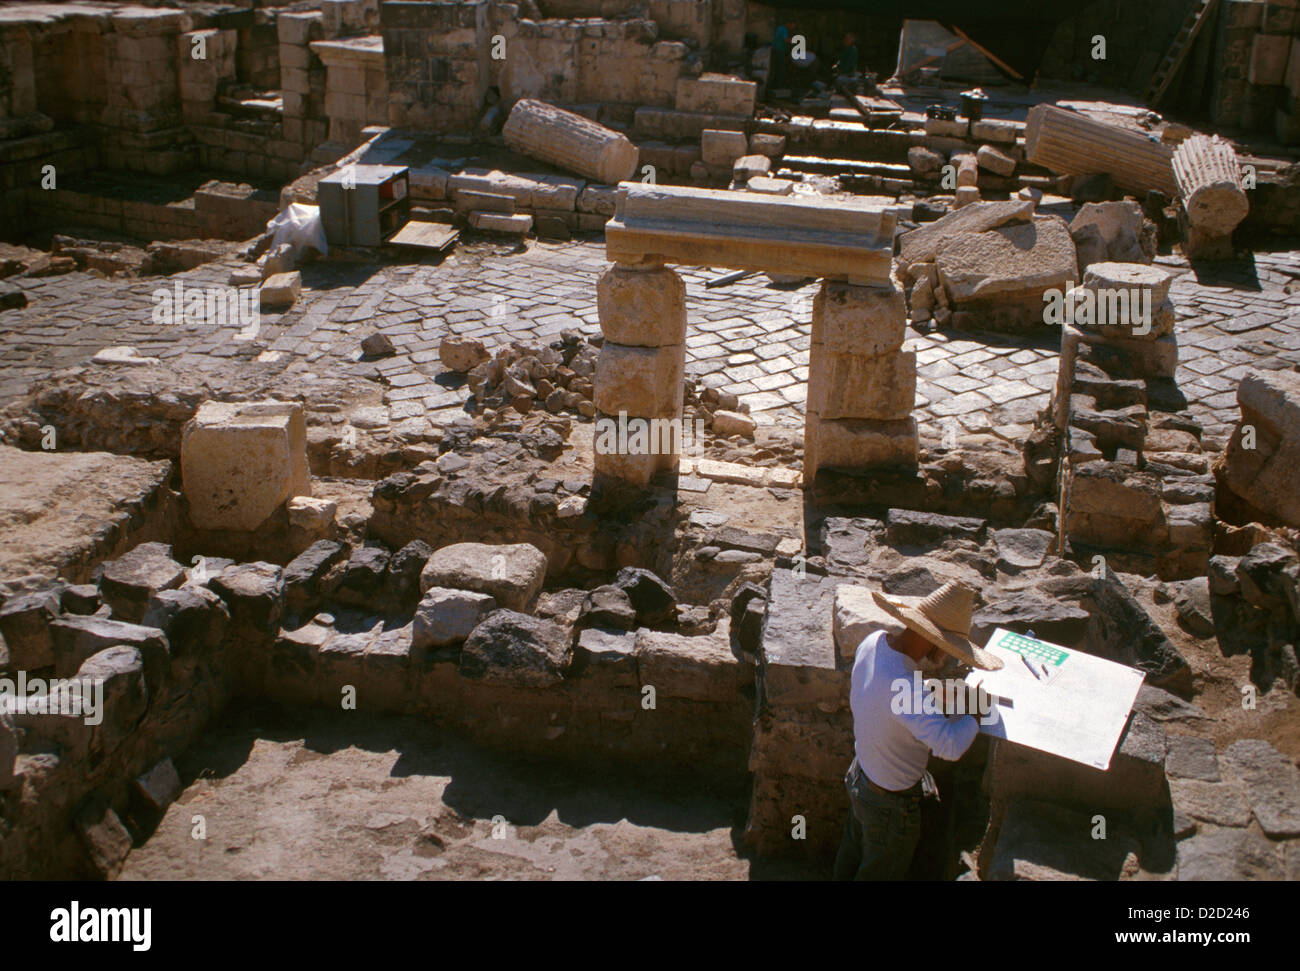 Israel, Beit She'An. Archeologist Executing Site Drawings Amid Ancient Ruins - Stock Image